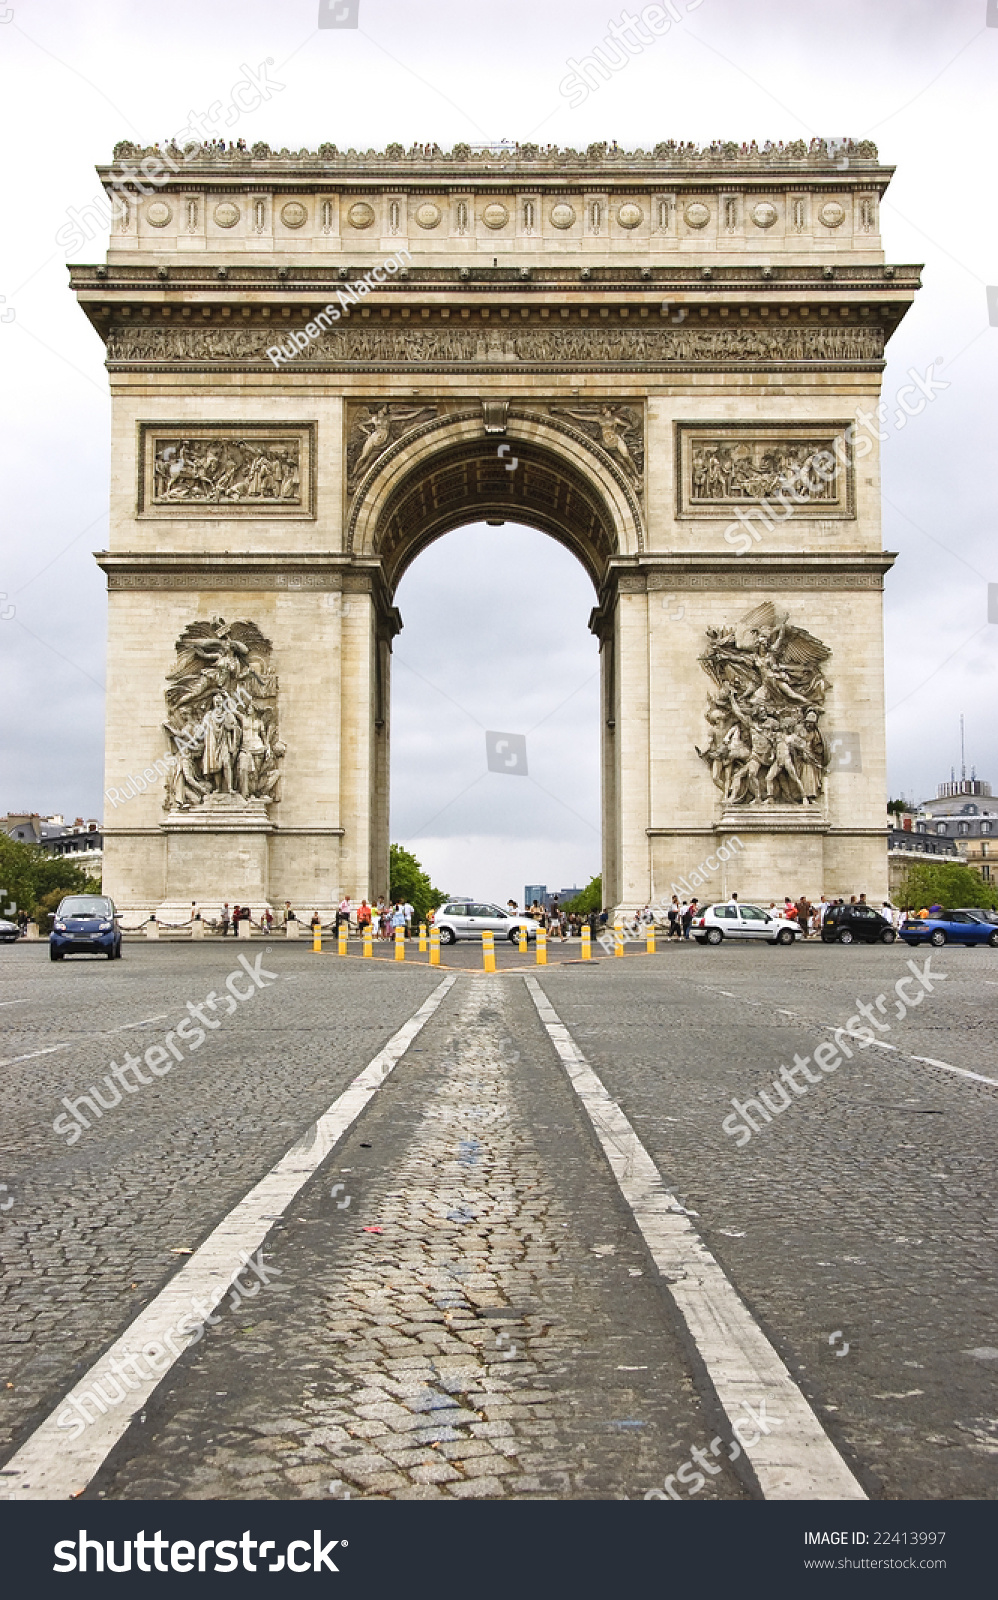 street level view arc de triomphe stock photo 22413997 shutterstock. Black Bedroom Furniture Sets. Home Design Ideas